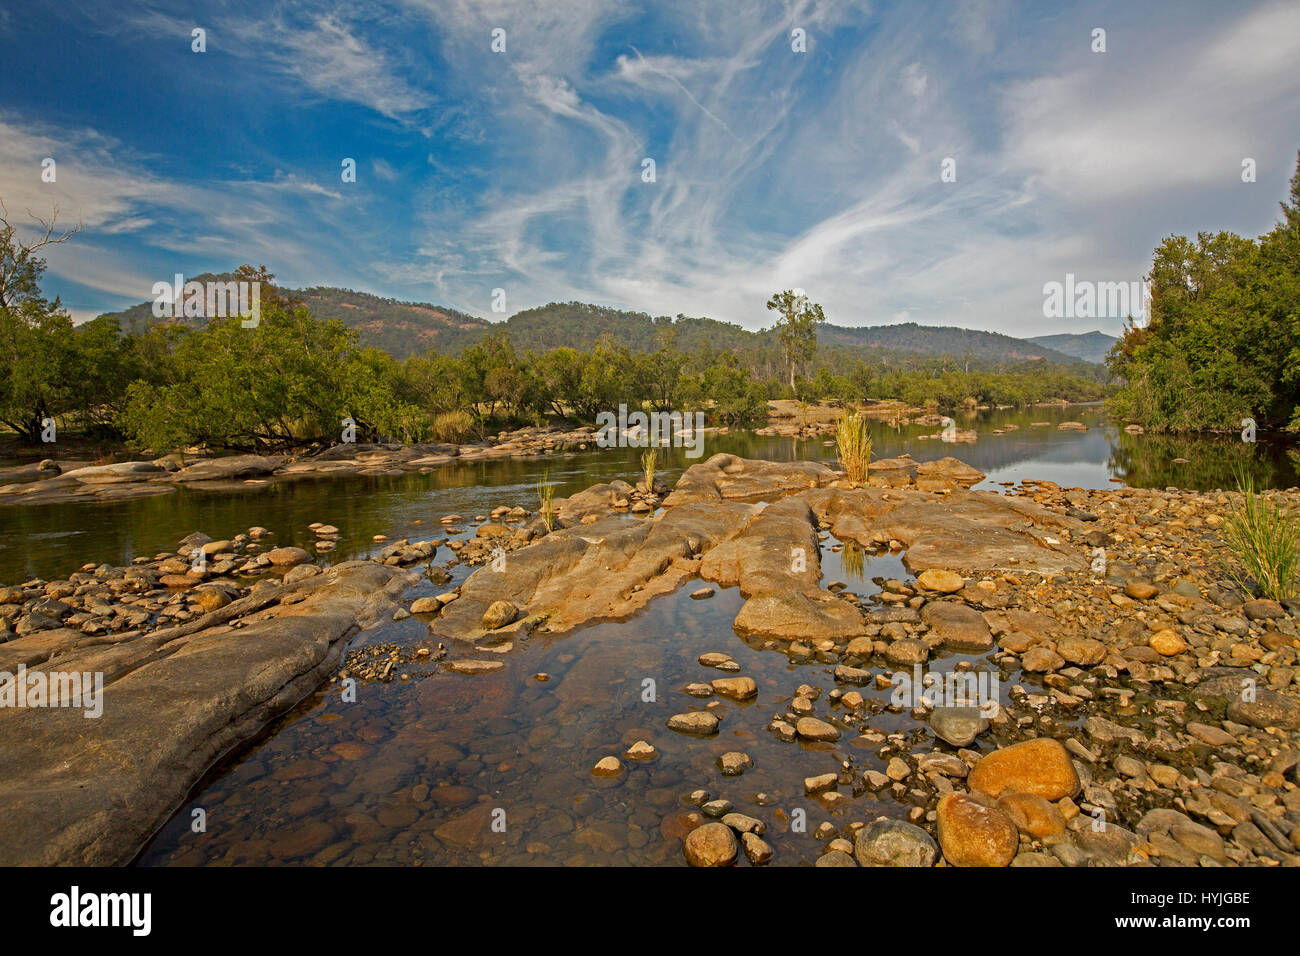 Panoramic view of rocky course of Mann River hemmed with forests & with ranges on horizon under blue sky near Coombadja NSW Australia Stock Photo